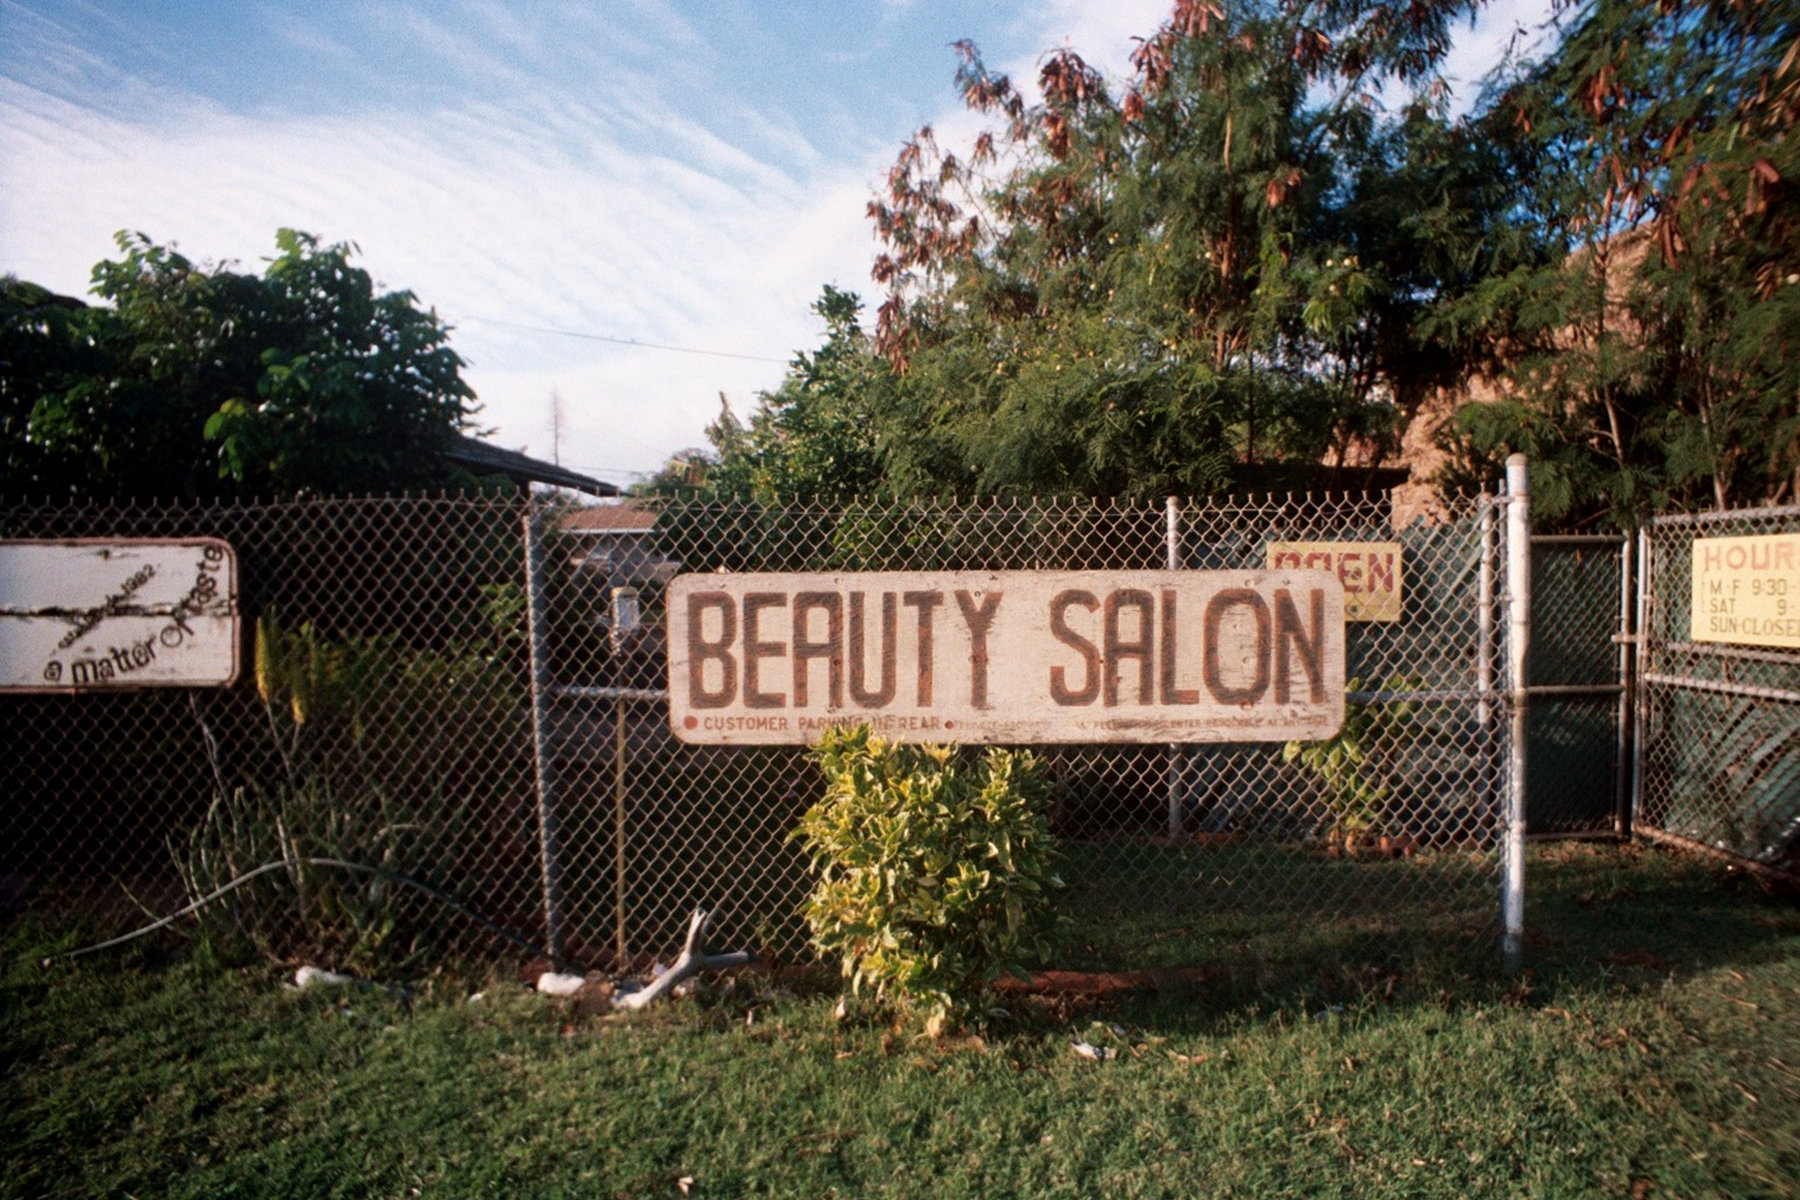 BEAUTYSALON.jpg